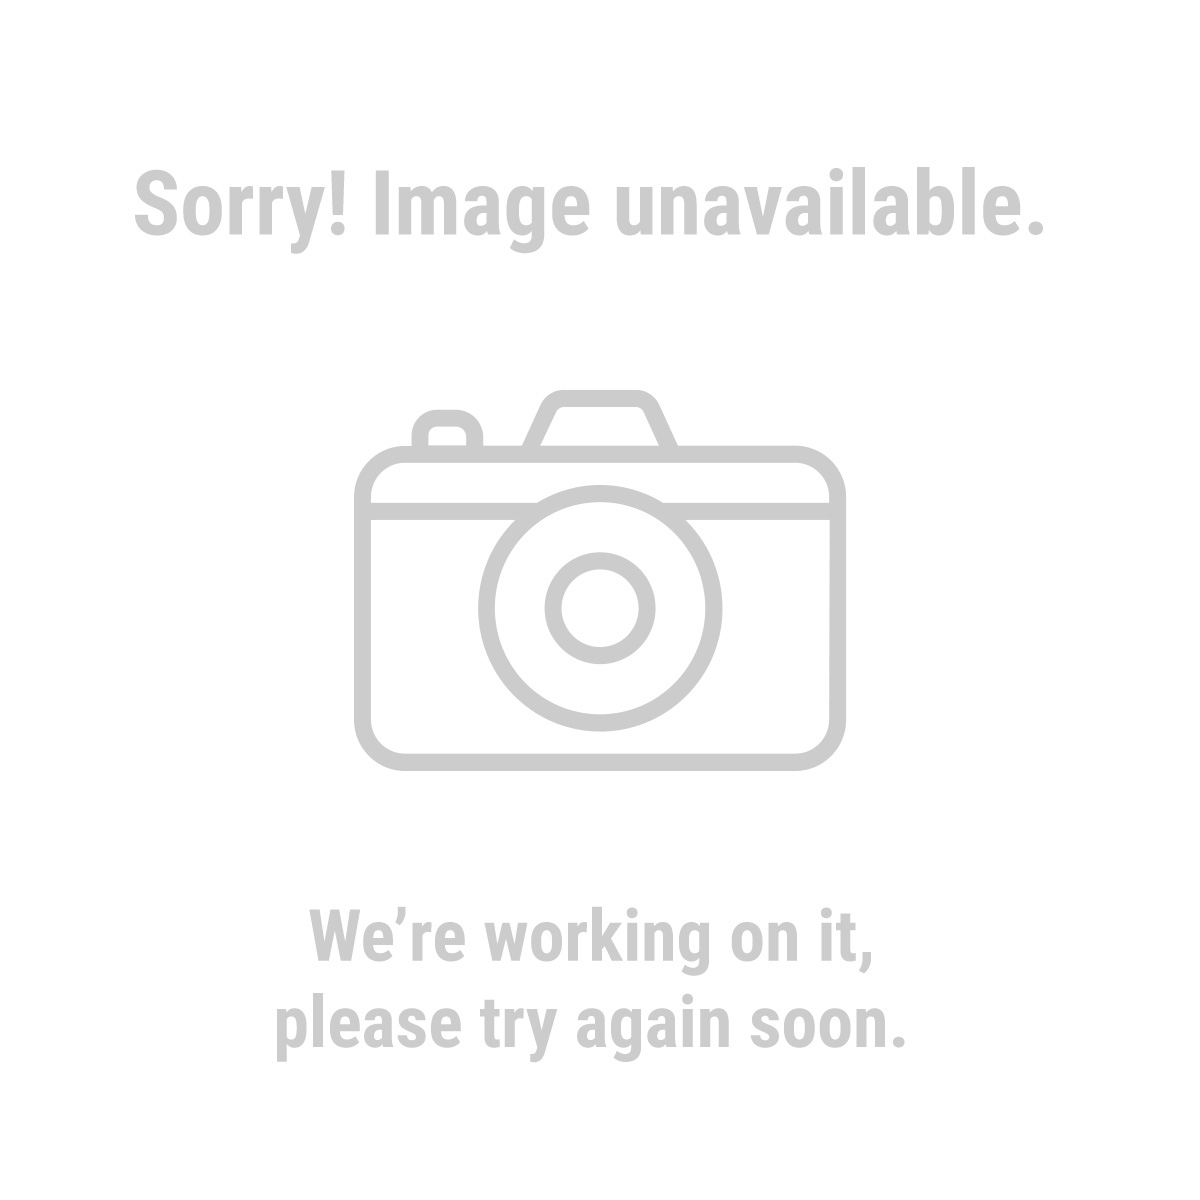 U.S. General 90428 Large Steel Service Cart with Locking Drawer